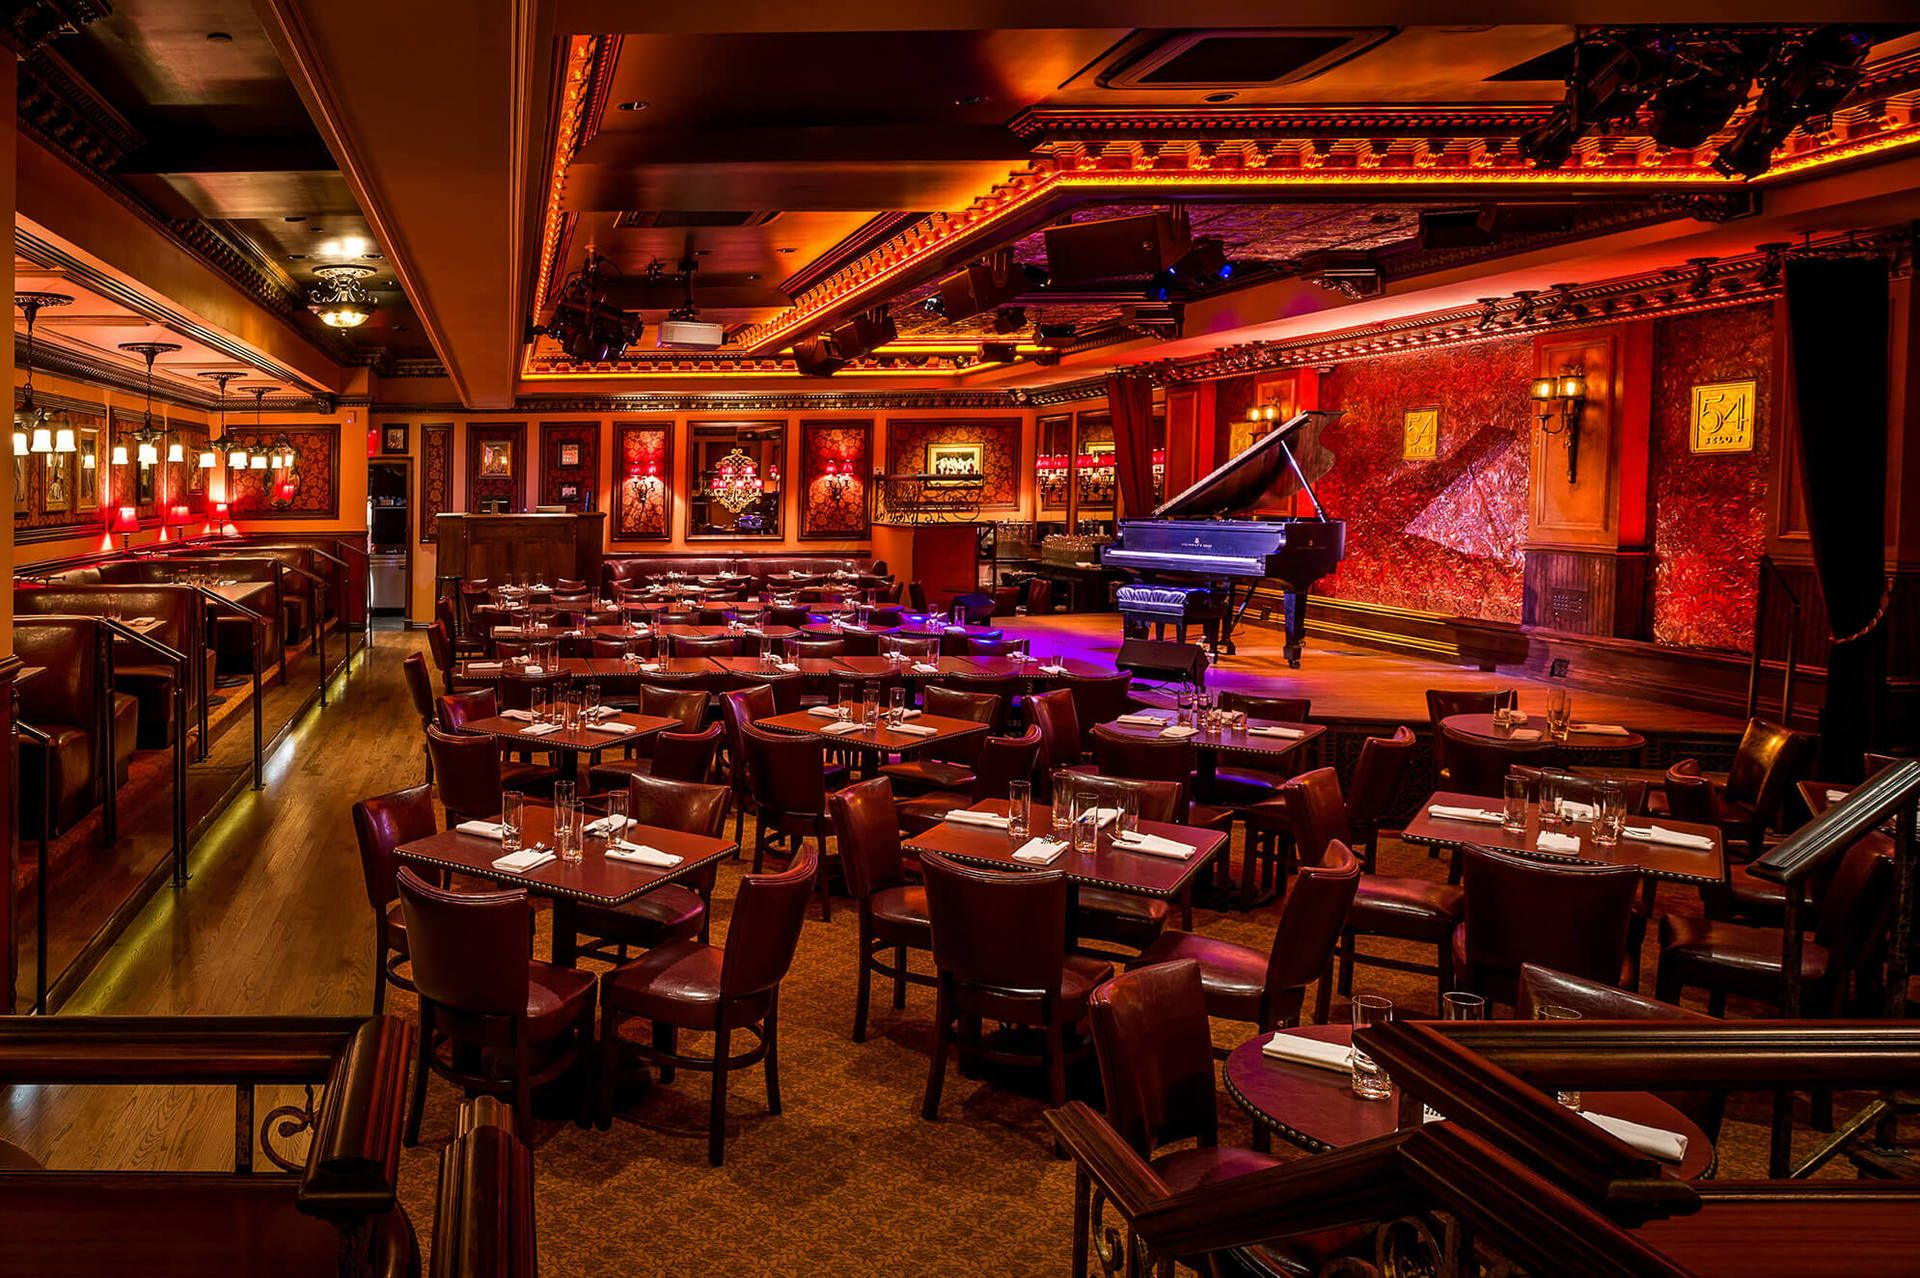 Feinstein's / 54 Below